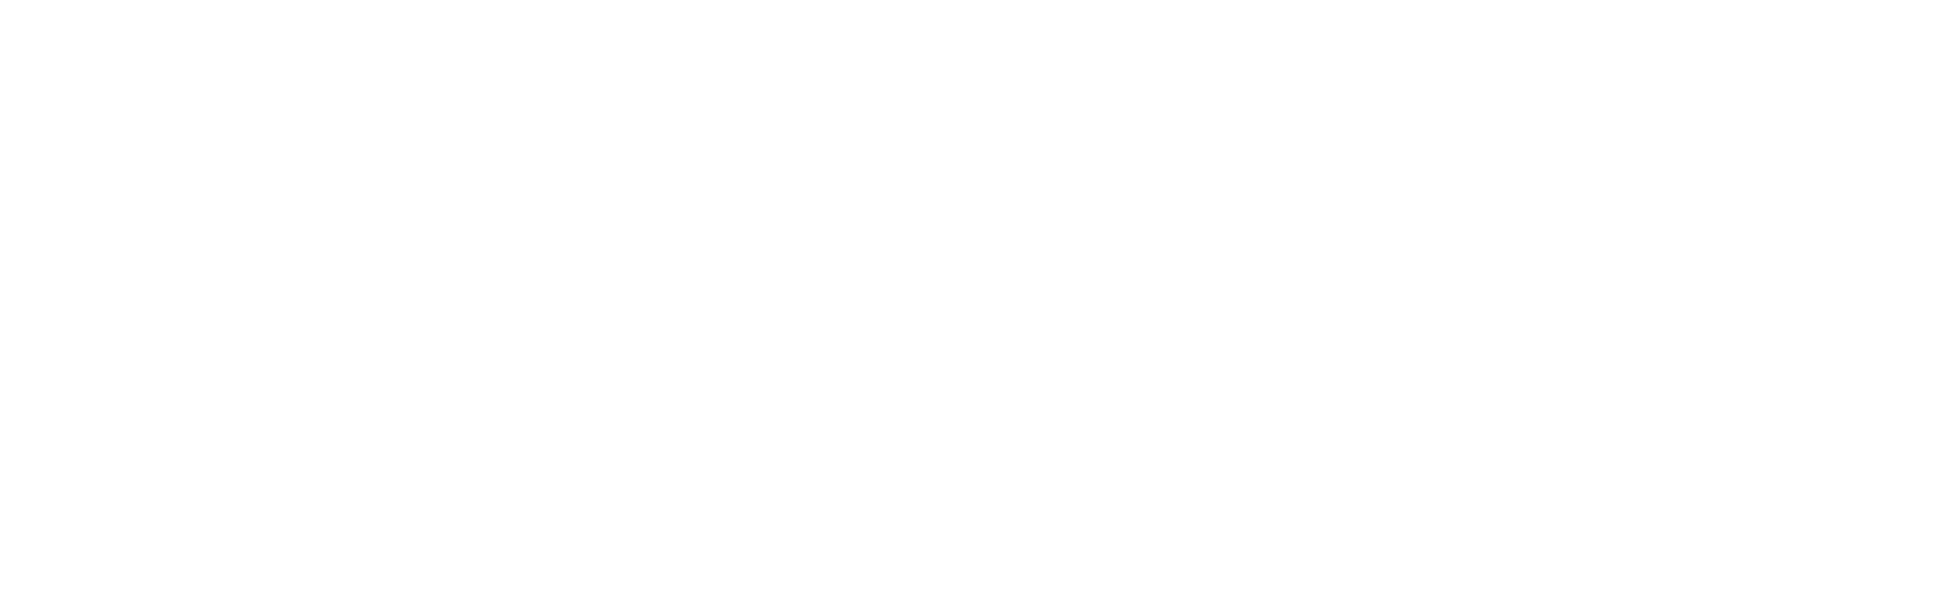 General News Headlines from Bay City News Online